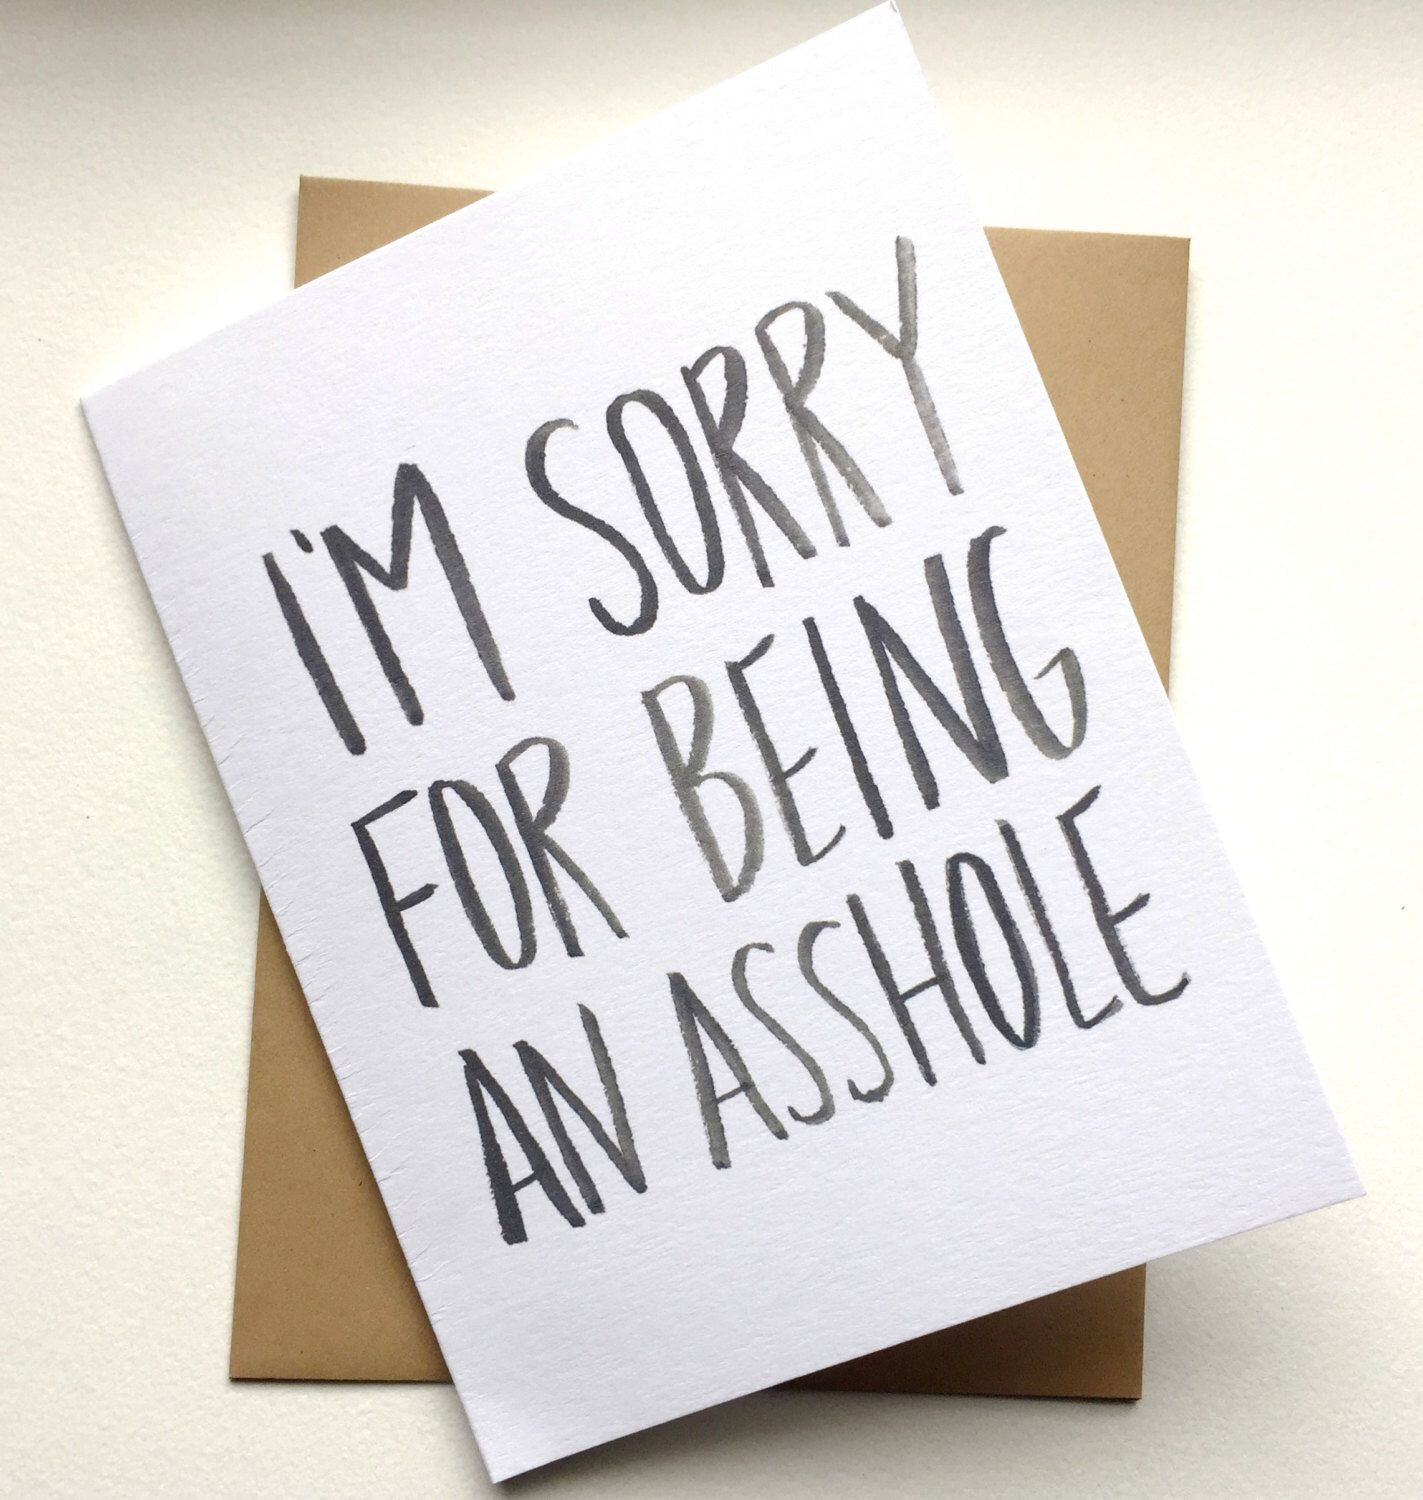 Cards for assholes